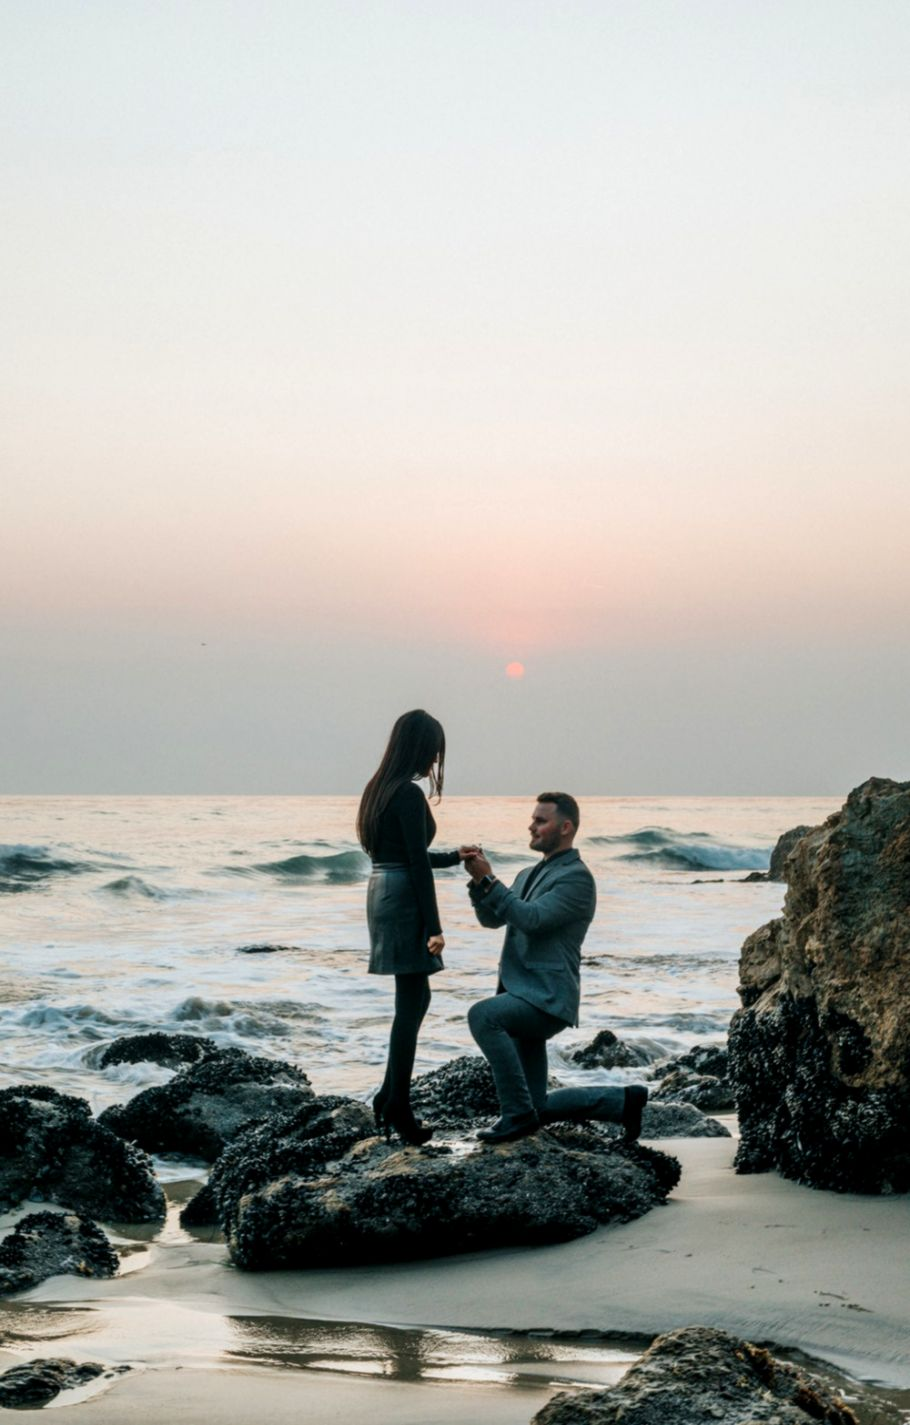 Best 100 Engagement Pictures Download Free Images On - Happy Propose Day 2020 , HD Wallpaper & Backgrounds